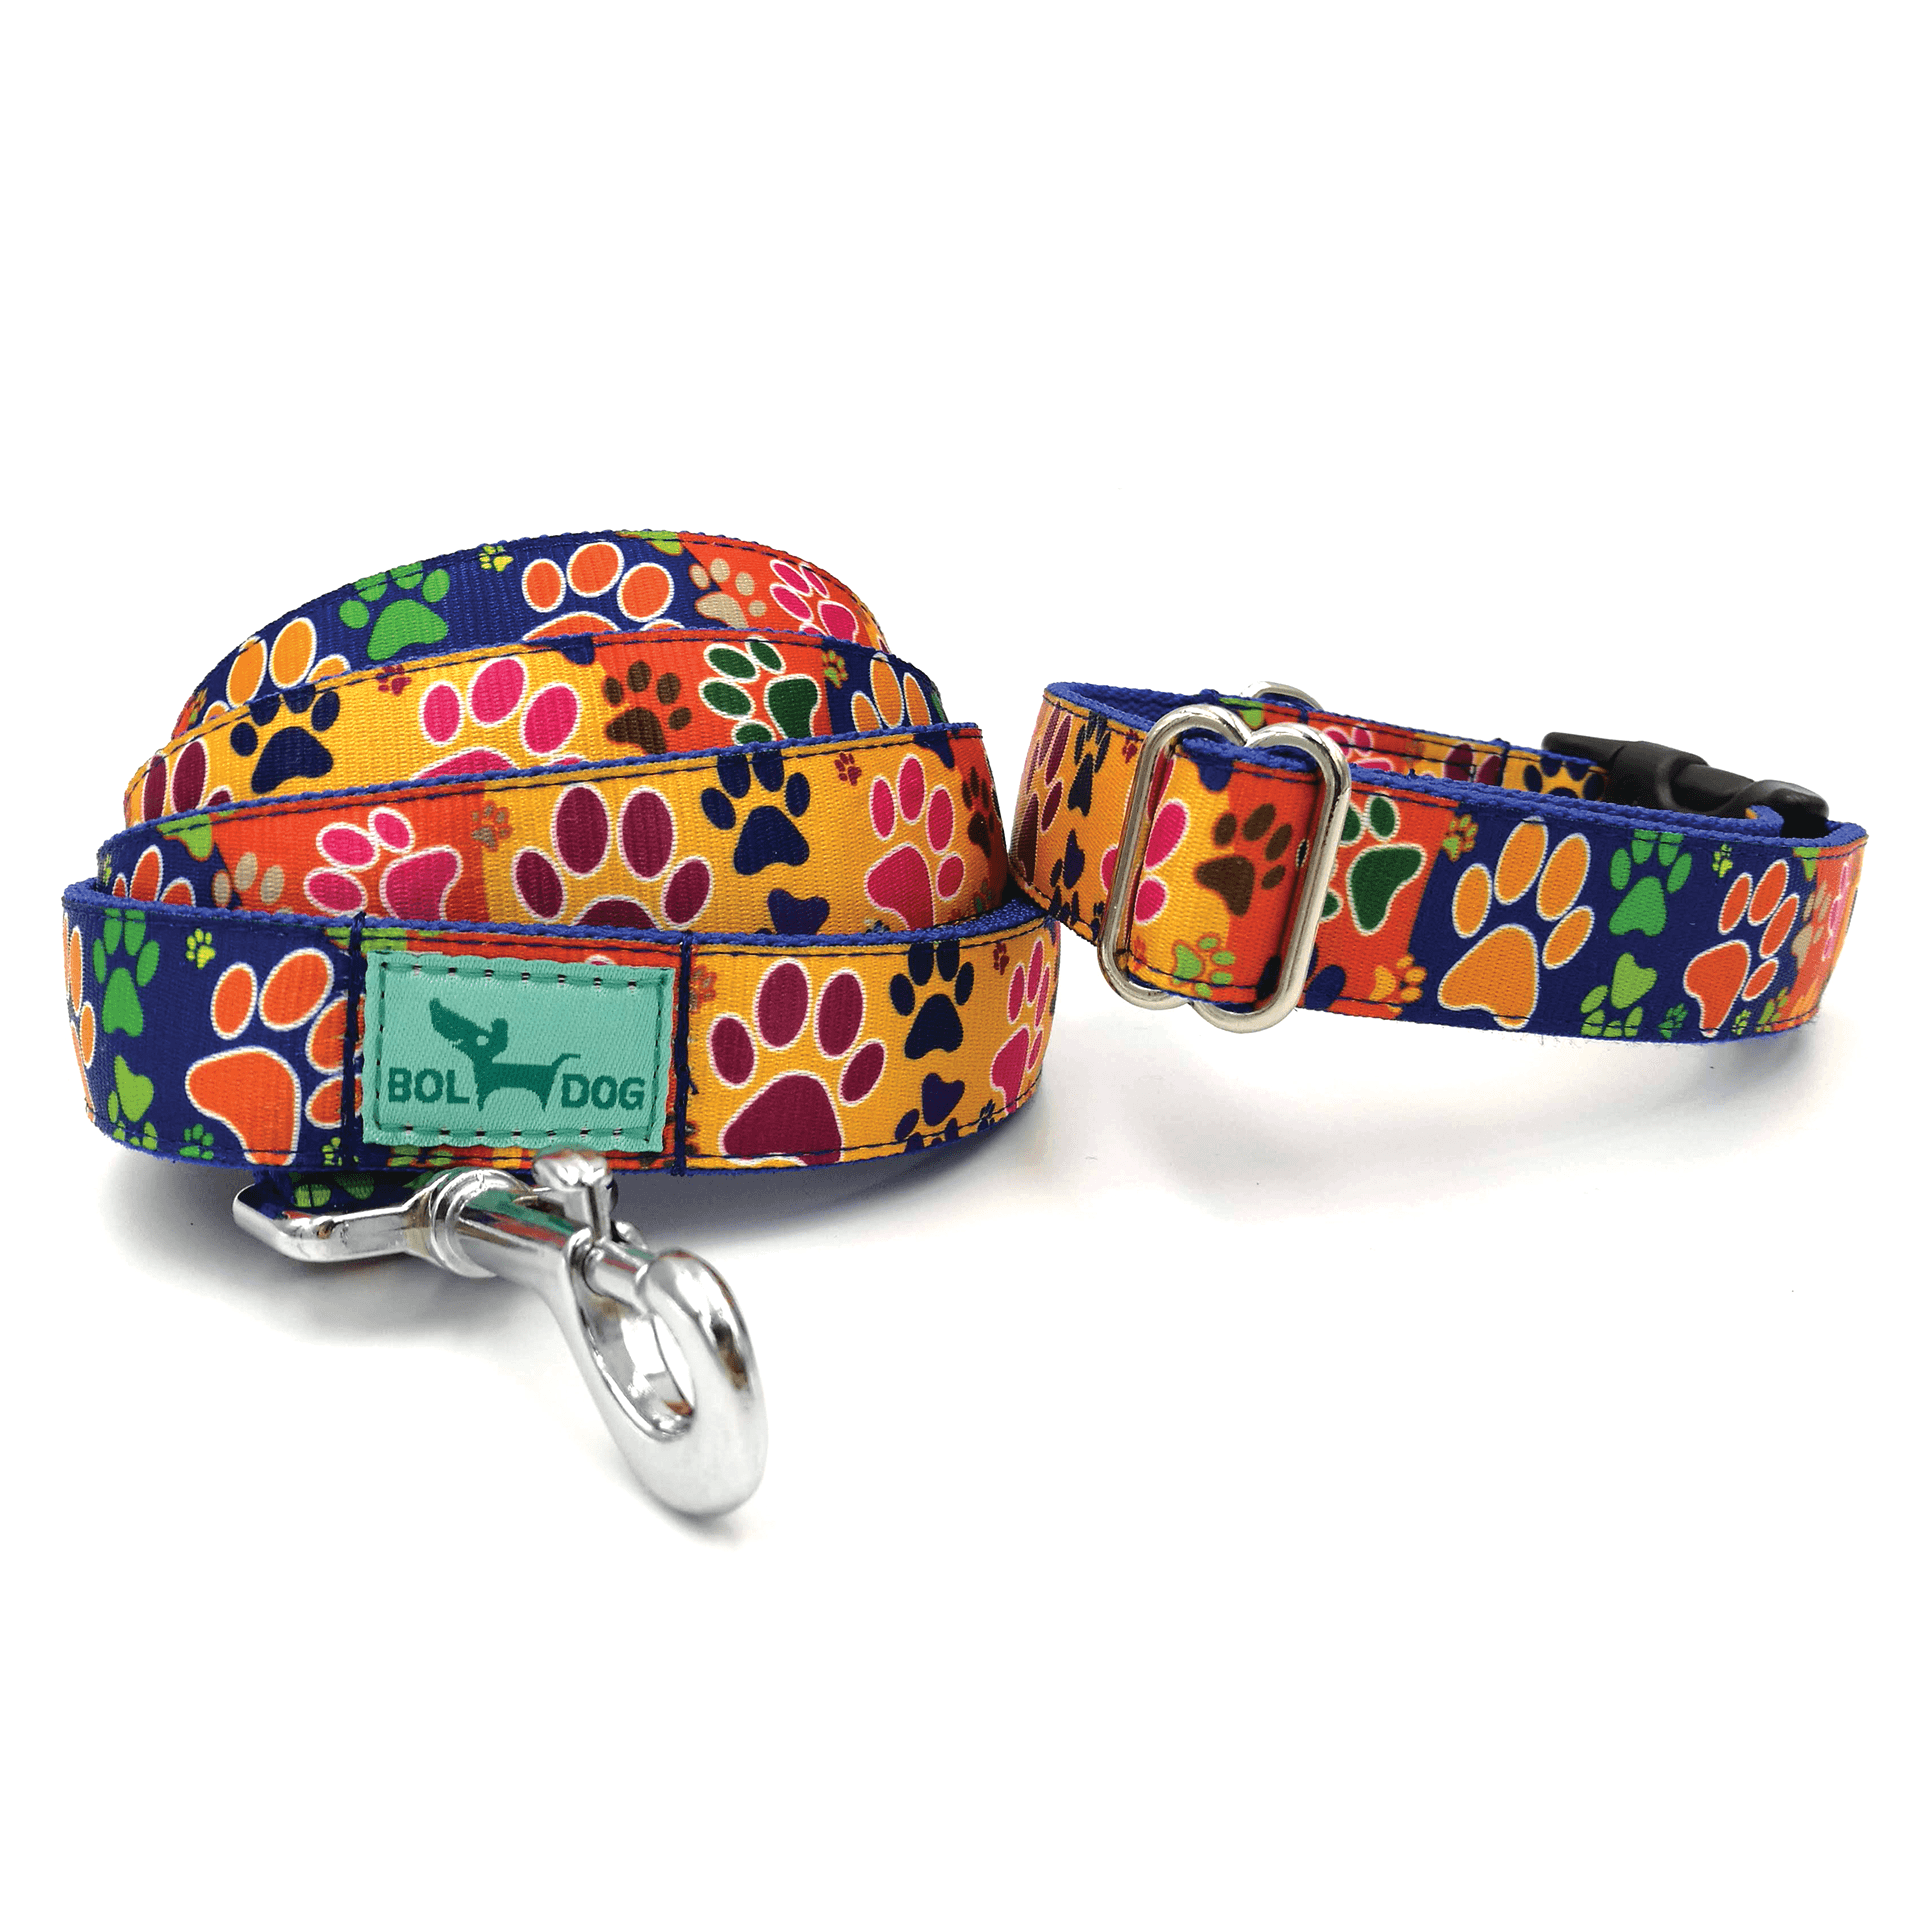 paws pattern dog leash and collar set